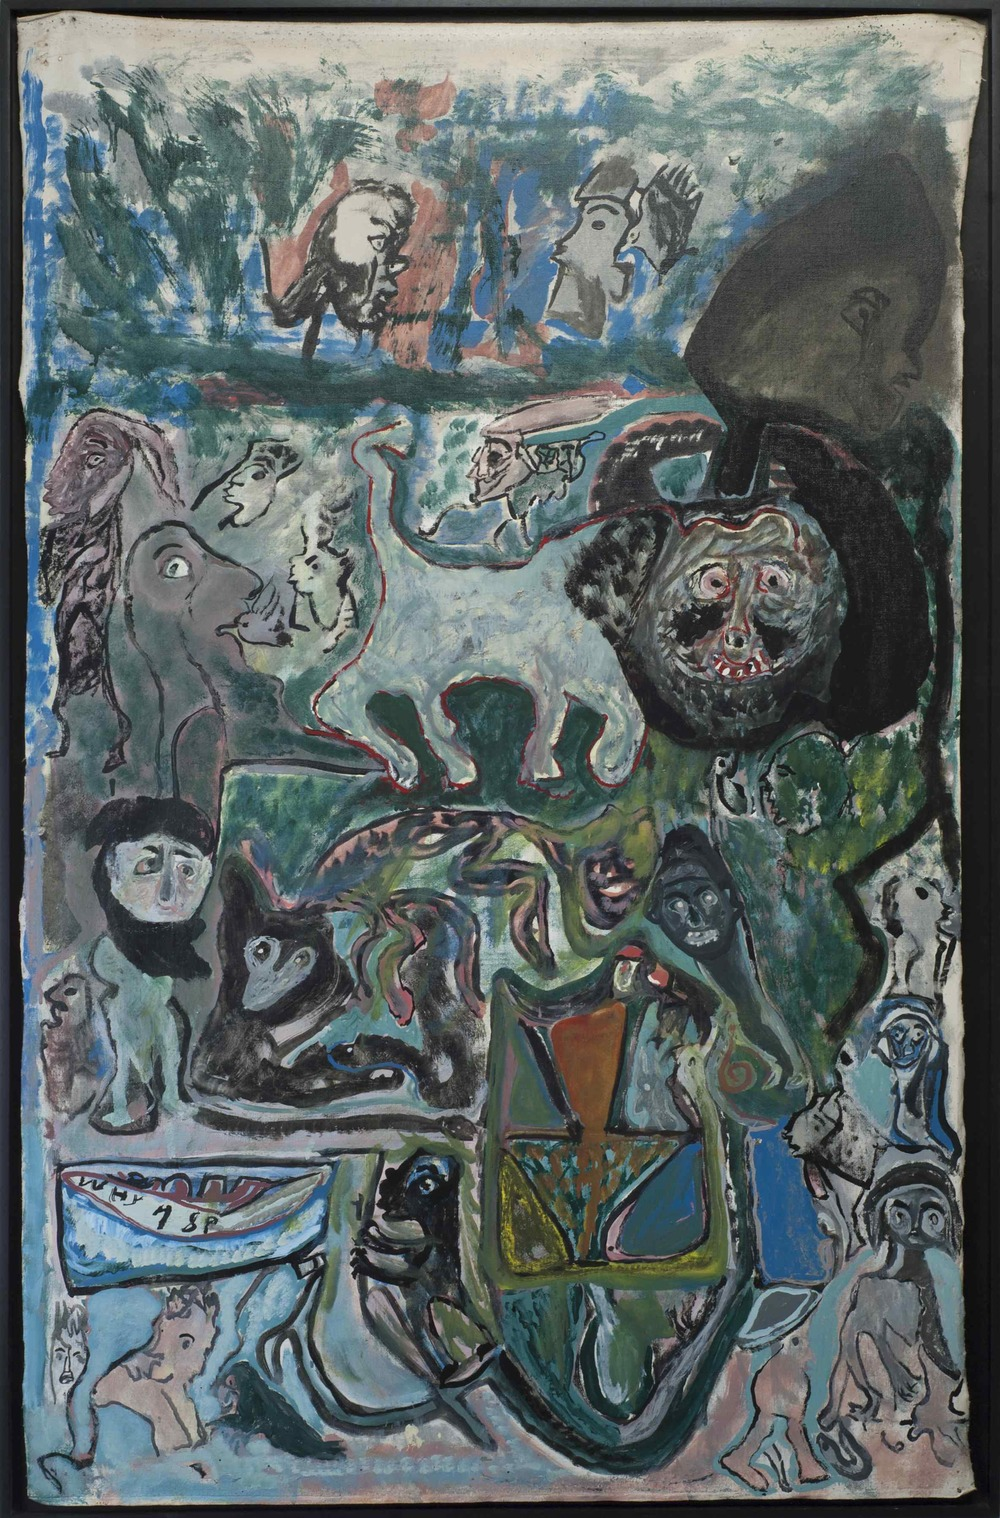 Leonard Daley    Why  , 1993 Mixed media/canvas 52.5 x 28.5 inches 133.4 x 72.4 cm LE 9